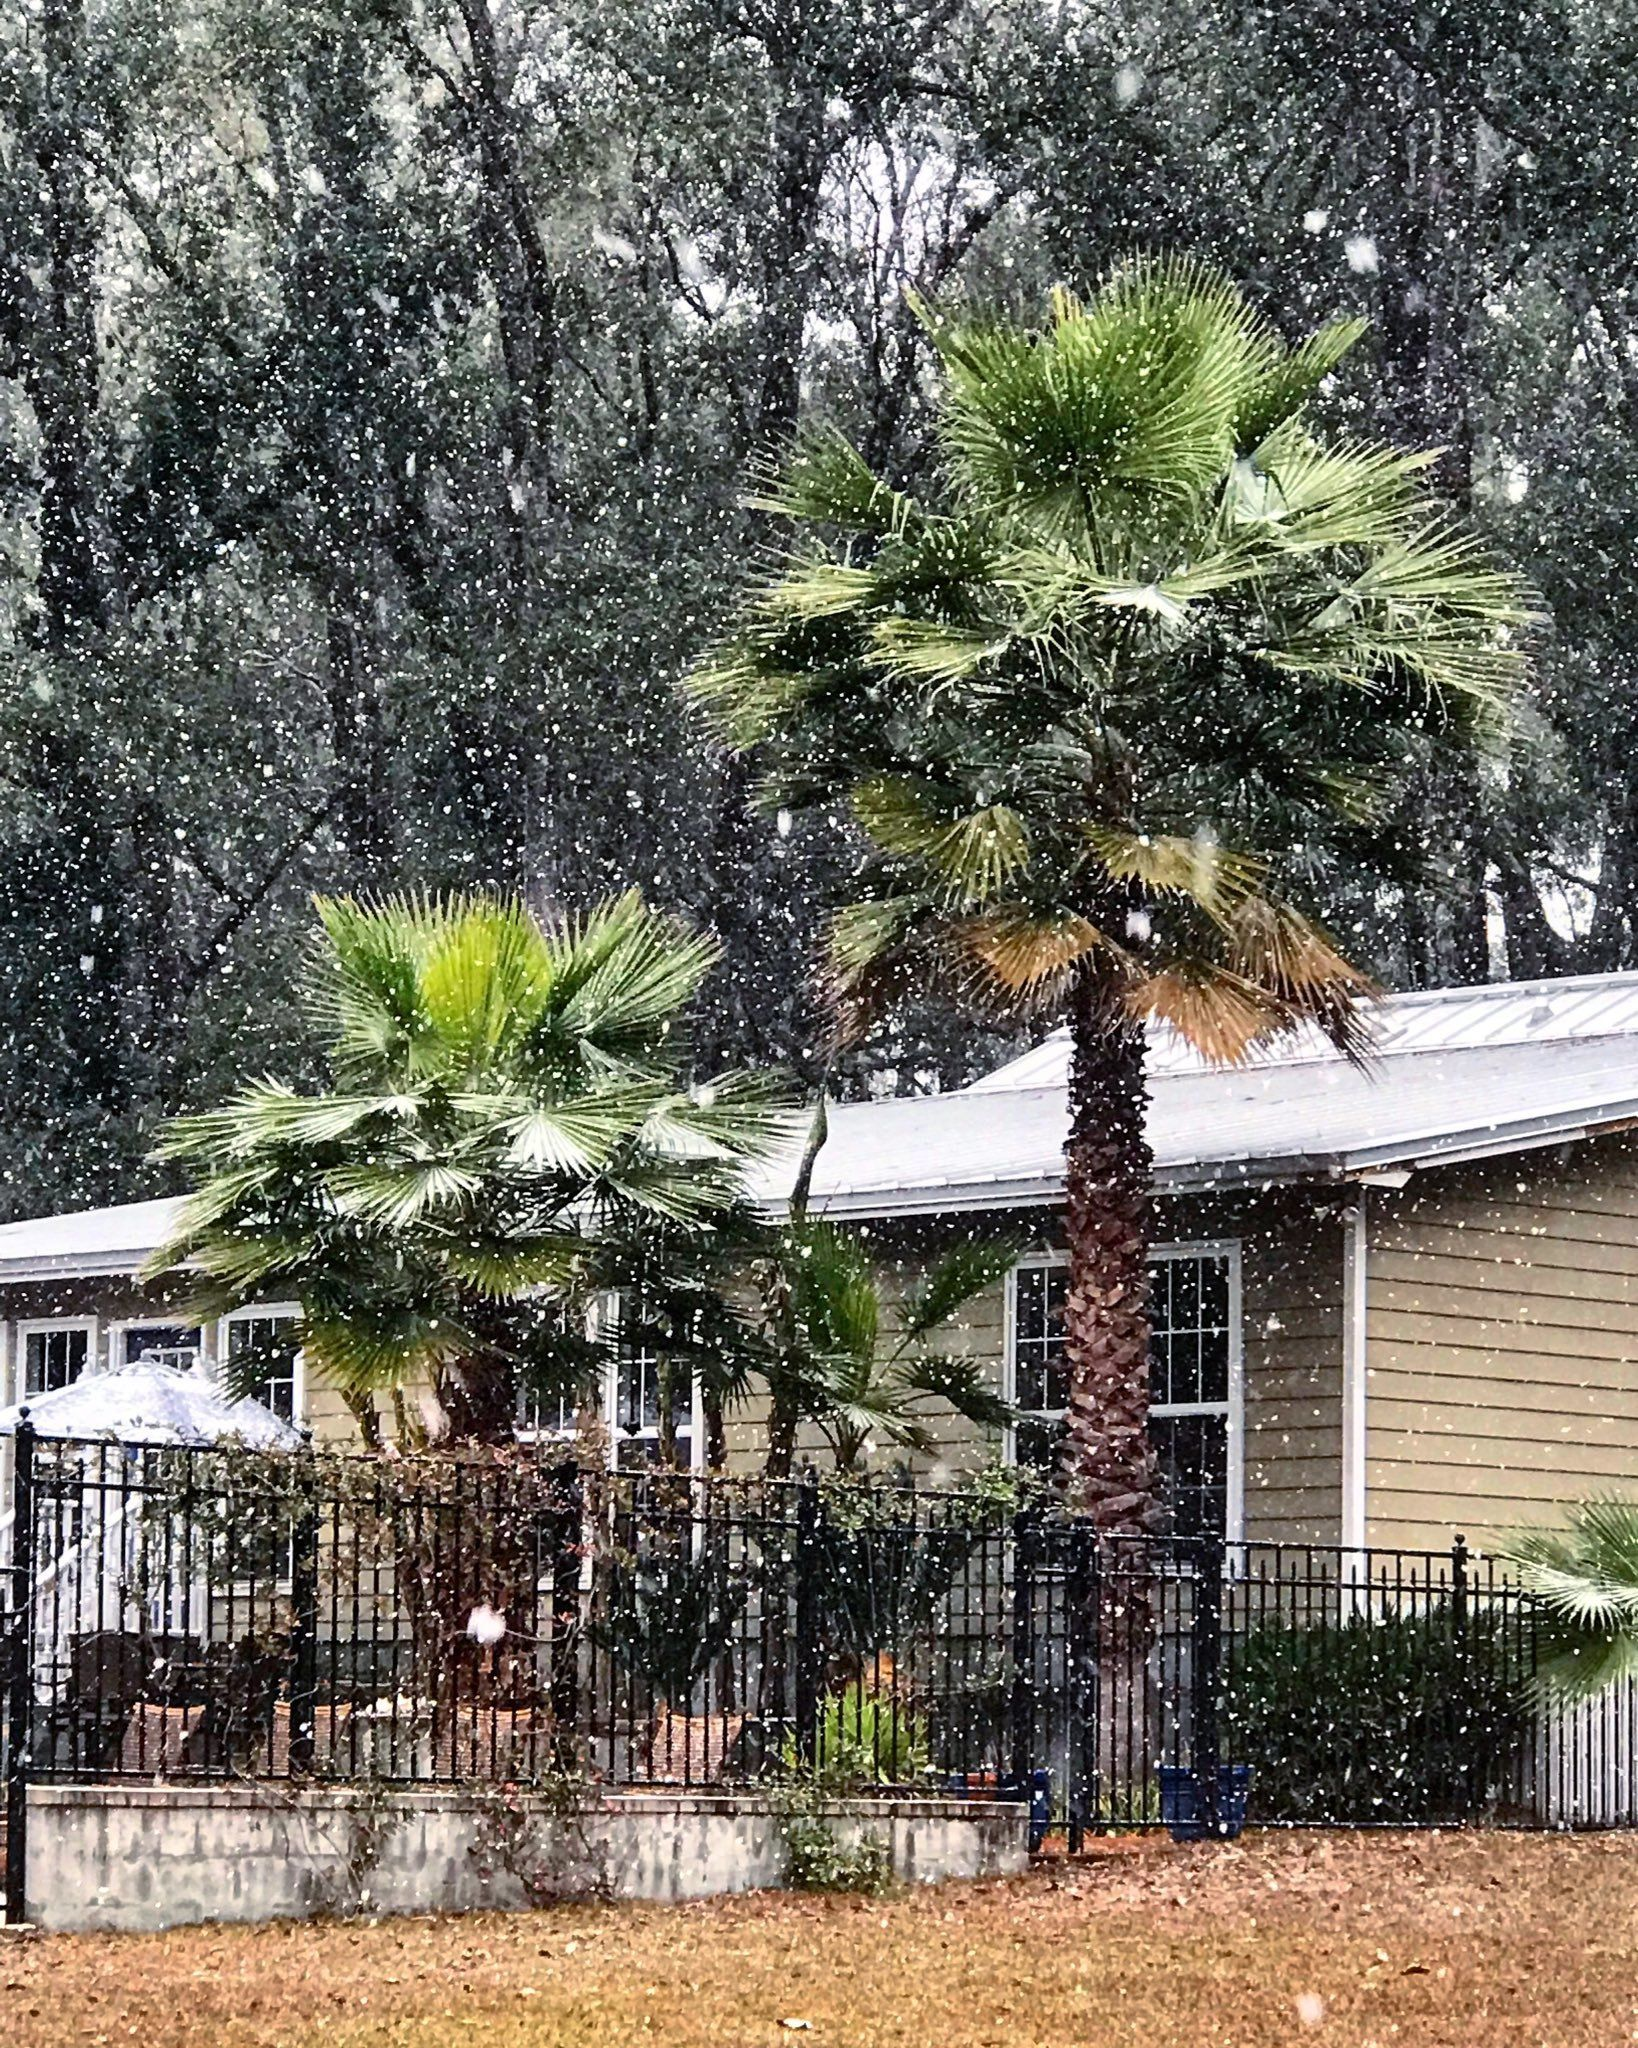 Snow in northern Florida captured by Twitter user Brennan Juhan on Wednesday